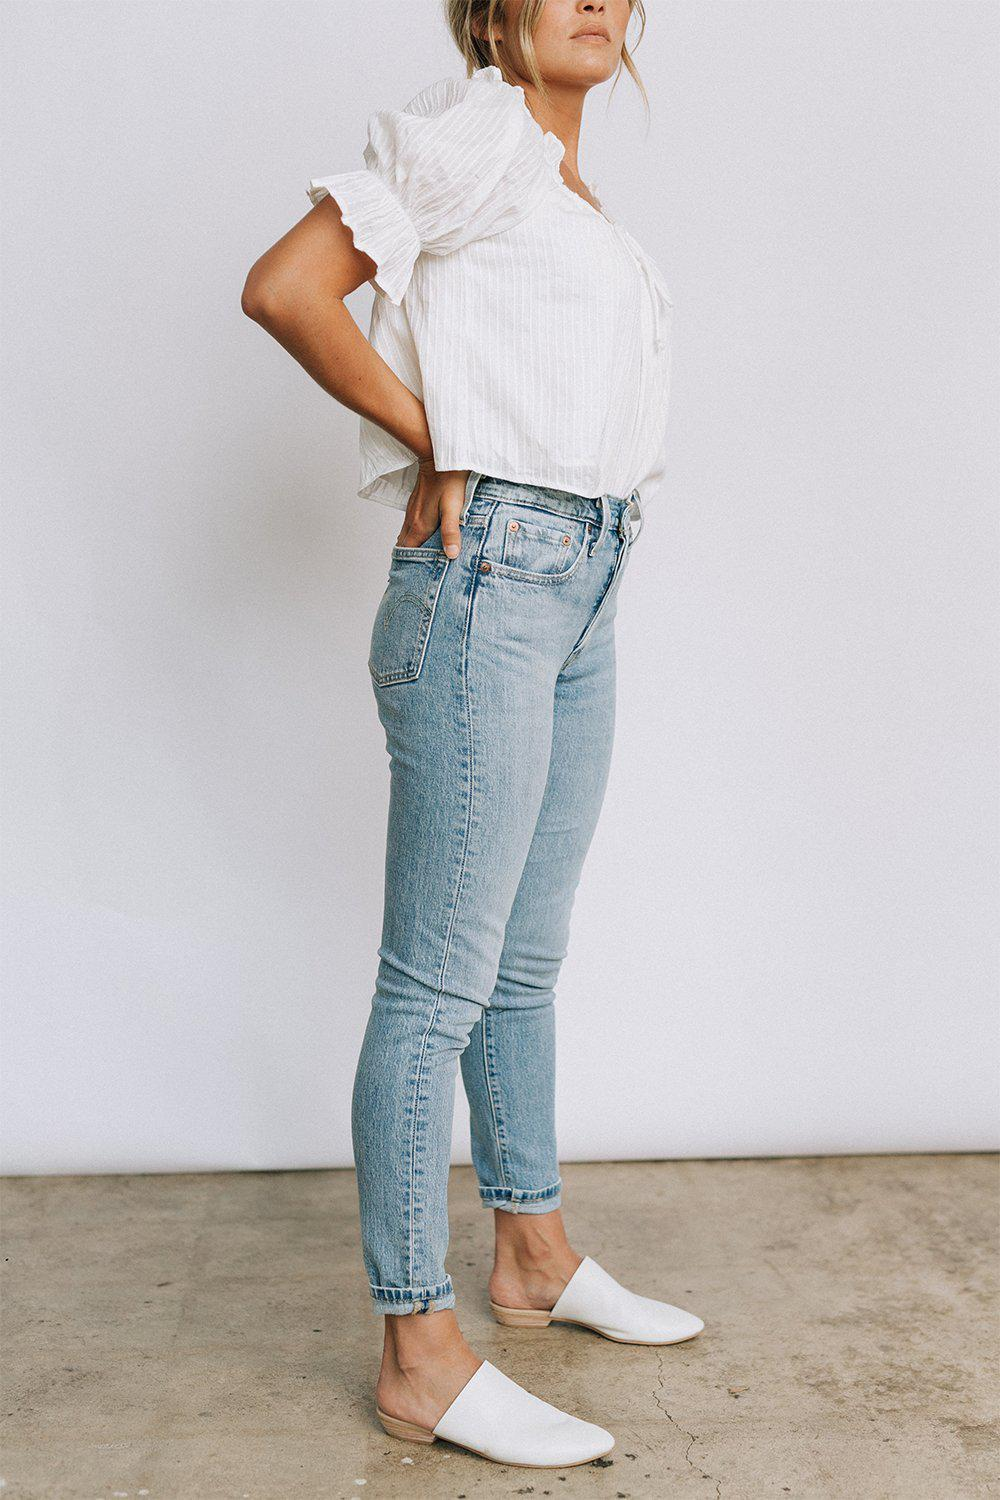 best_seller, Levi's 501 Skinny in Tango Light, Bottom, women's clothing, dresses, skirts, coats, jackets, shoes, boots, tops, tee shirts, jeans, free people, levi's, rollas, jumpsuits, bottoms, tops, sweaters, pullovers, pants, shorts, sweats,.